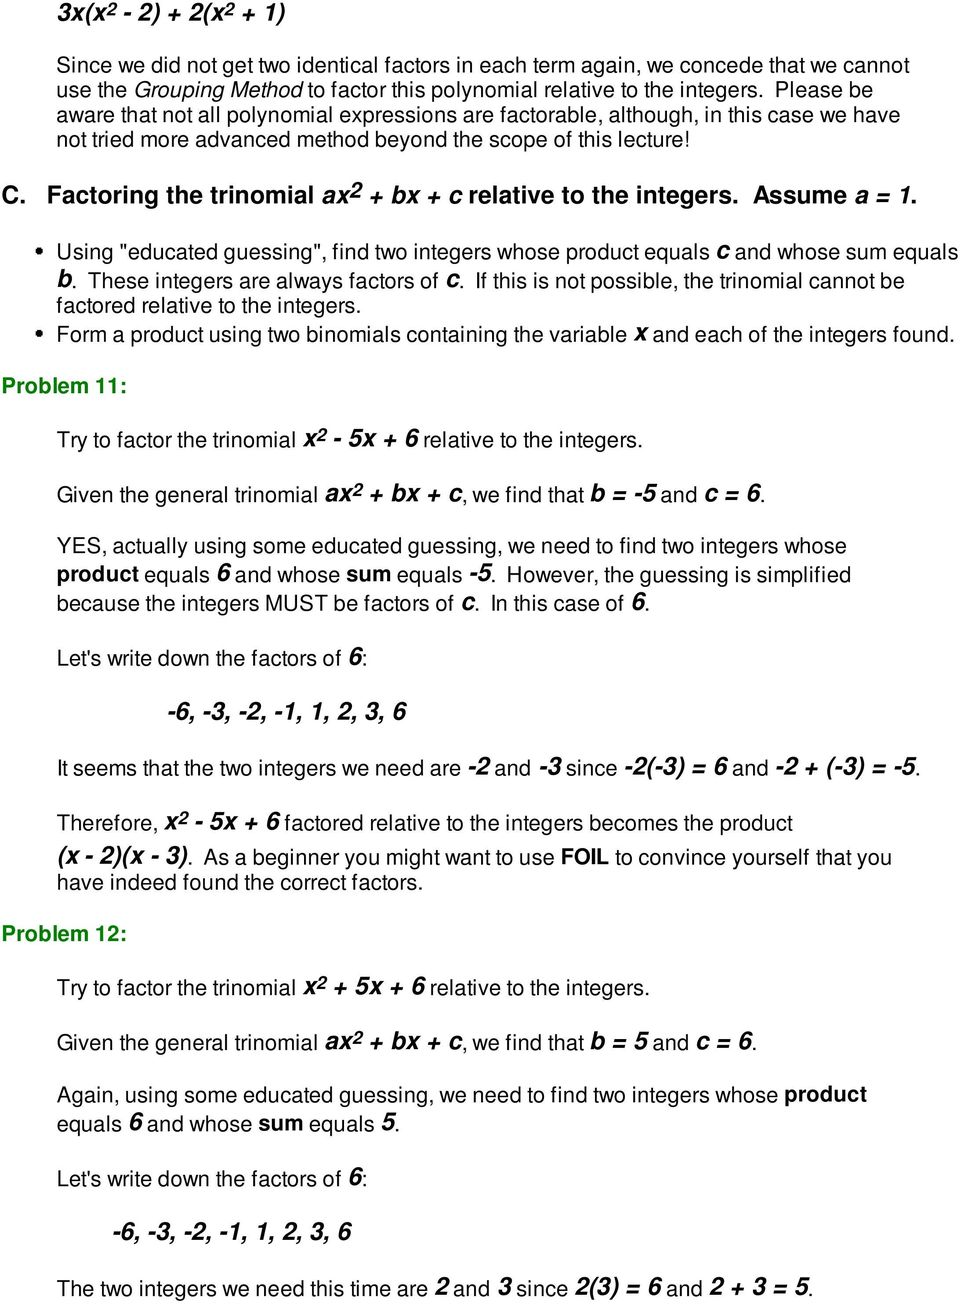 "Factoring the trinomial ax2 + bx + c relative to the integers. Assume a = 1. Using ""educated guessing"", find two integers whose product equals c and whose sum equals b."